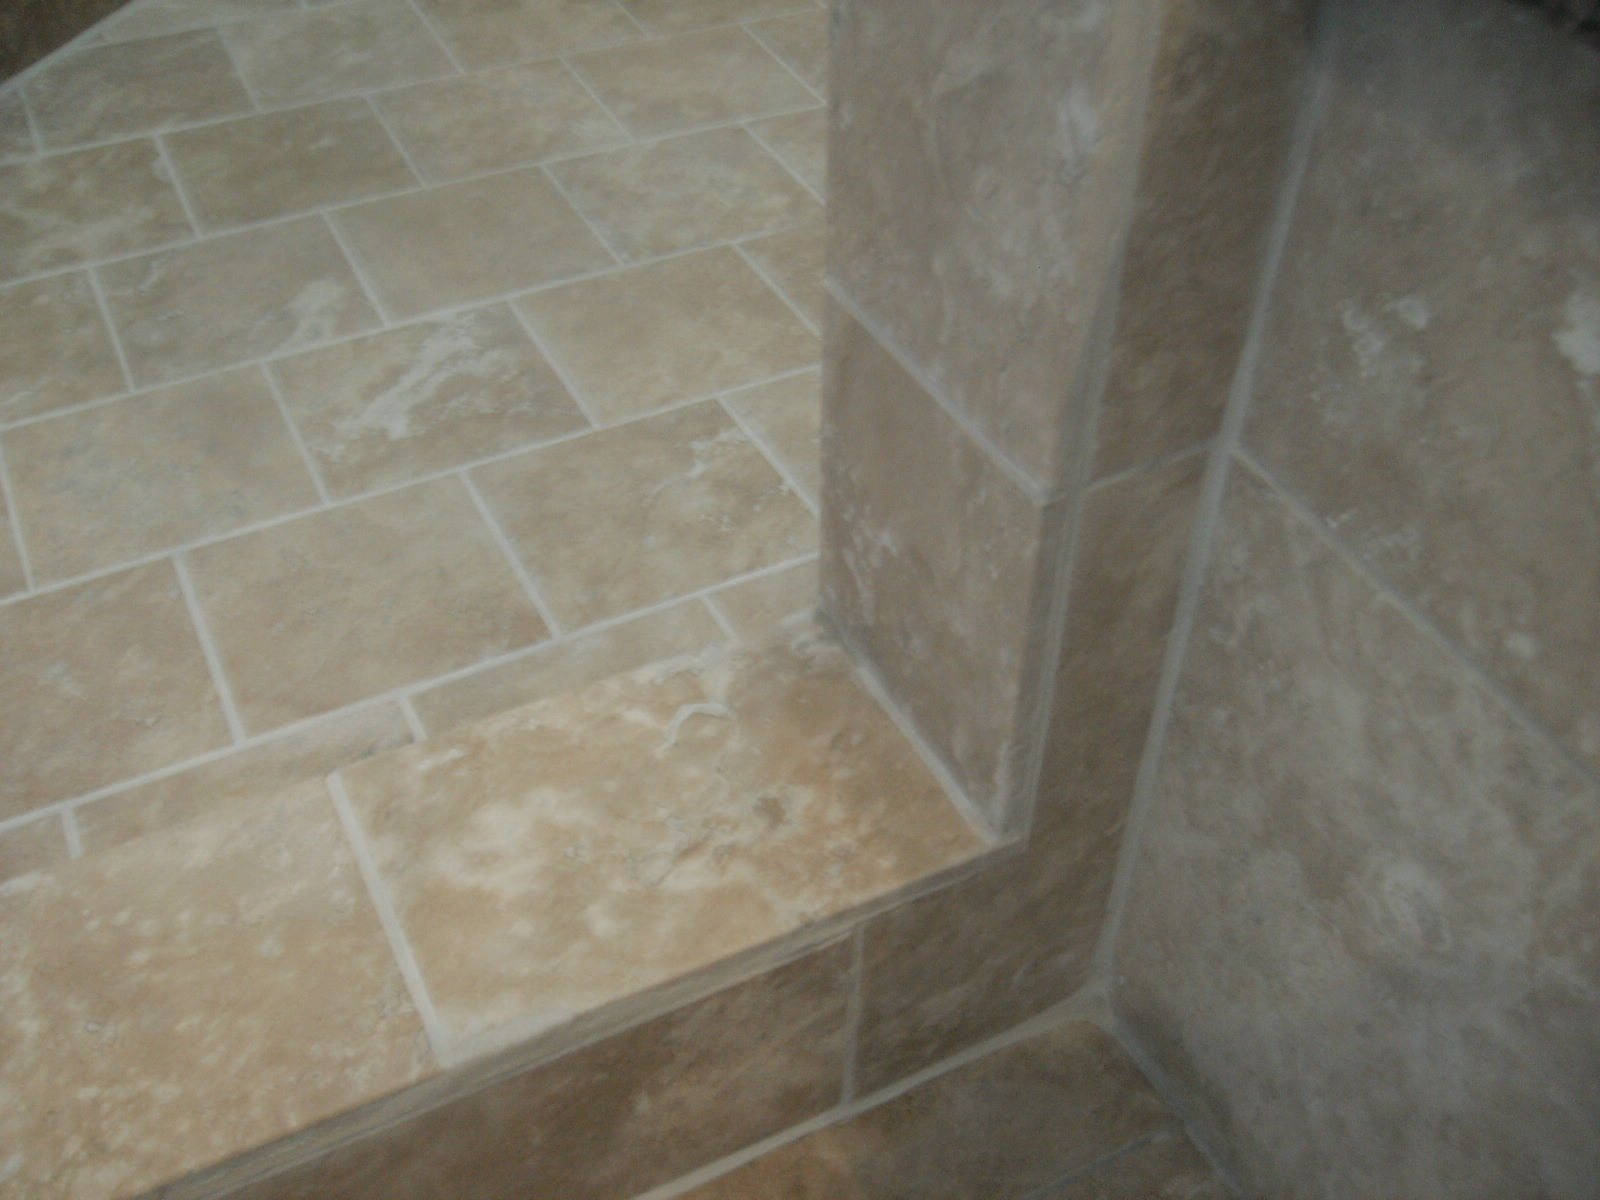 How To Clean And Maintain Tile Grout Confessions Of A Tile Setter